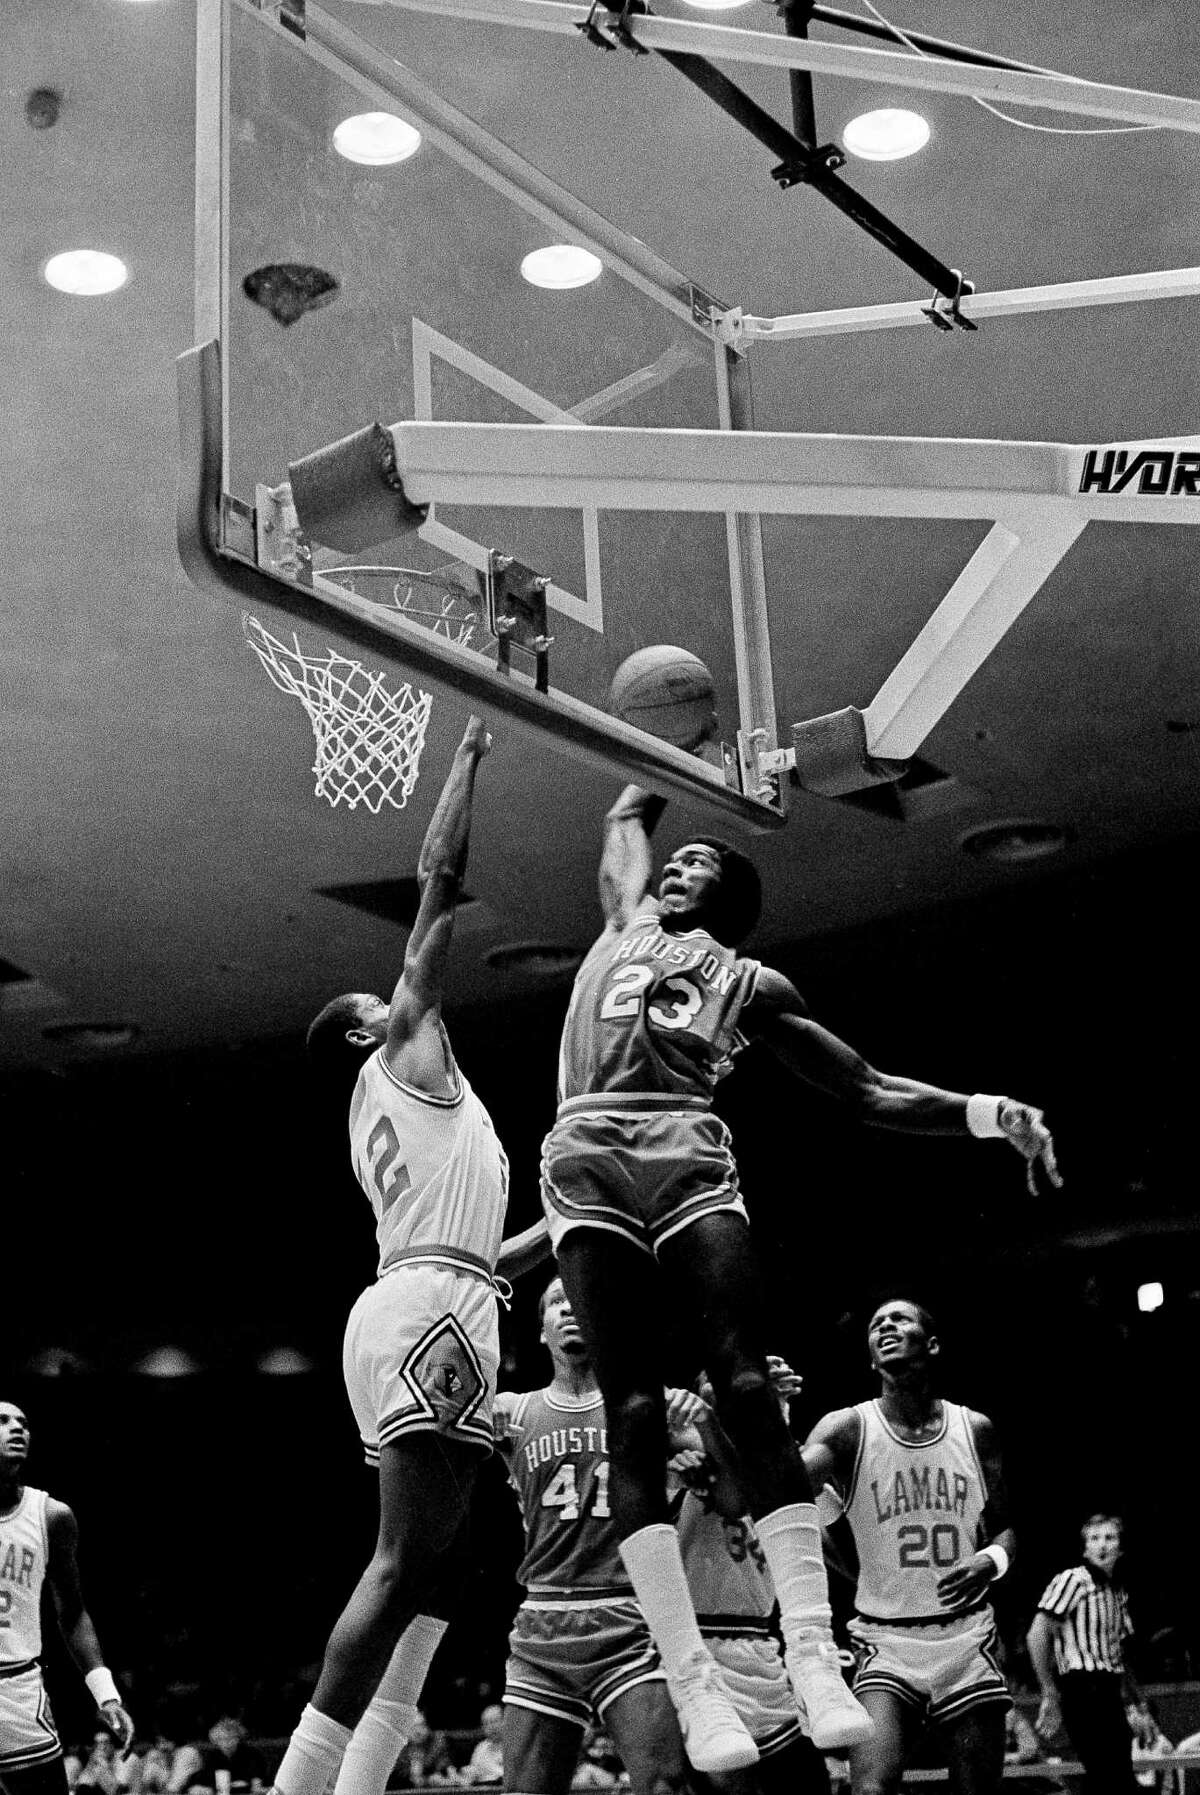 University of Houston's Clyde Drexler (23) cocks his arm for a slam dunk over the outstretched arm of Lamar University's Kenneth Cook (42) in the finals of the Kettle Classic at Hofheinz Pavilion, Houston, Nov. 28, 1982. Larry Micheaux (41) and Brian Kelleybrew (20) look on.